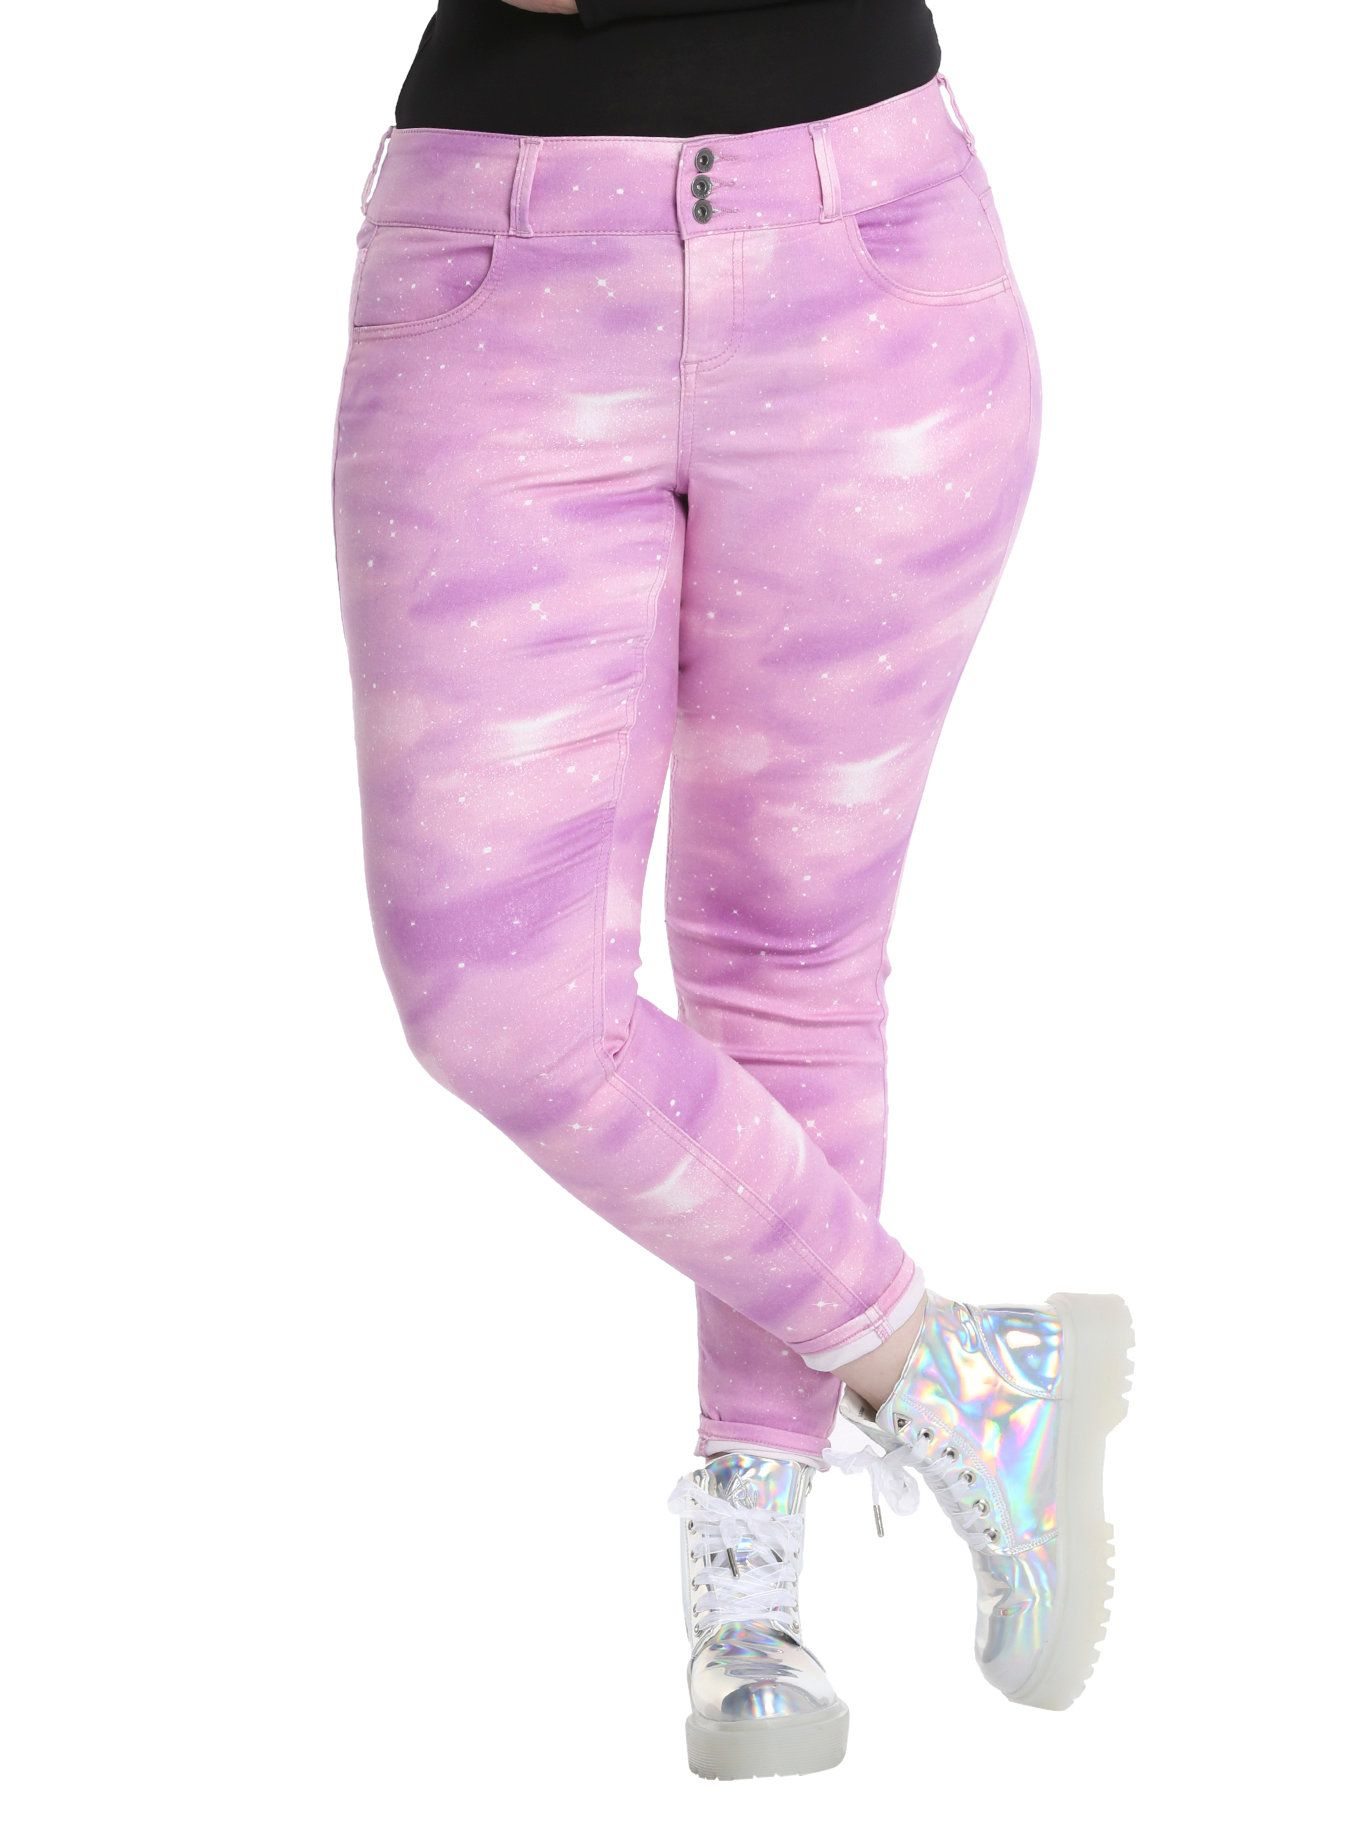 02fe8cbba4c23 They re here just for you to look cute-as-pie in! The super skinny jeans  from Blackheart have an allover pink galaxy print ...